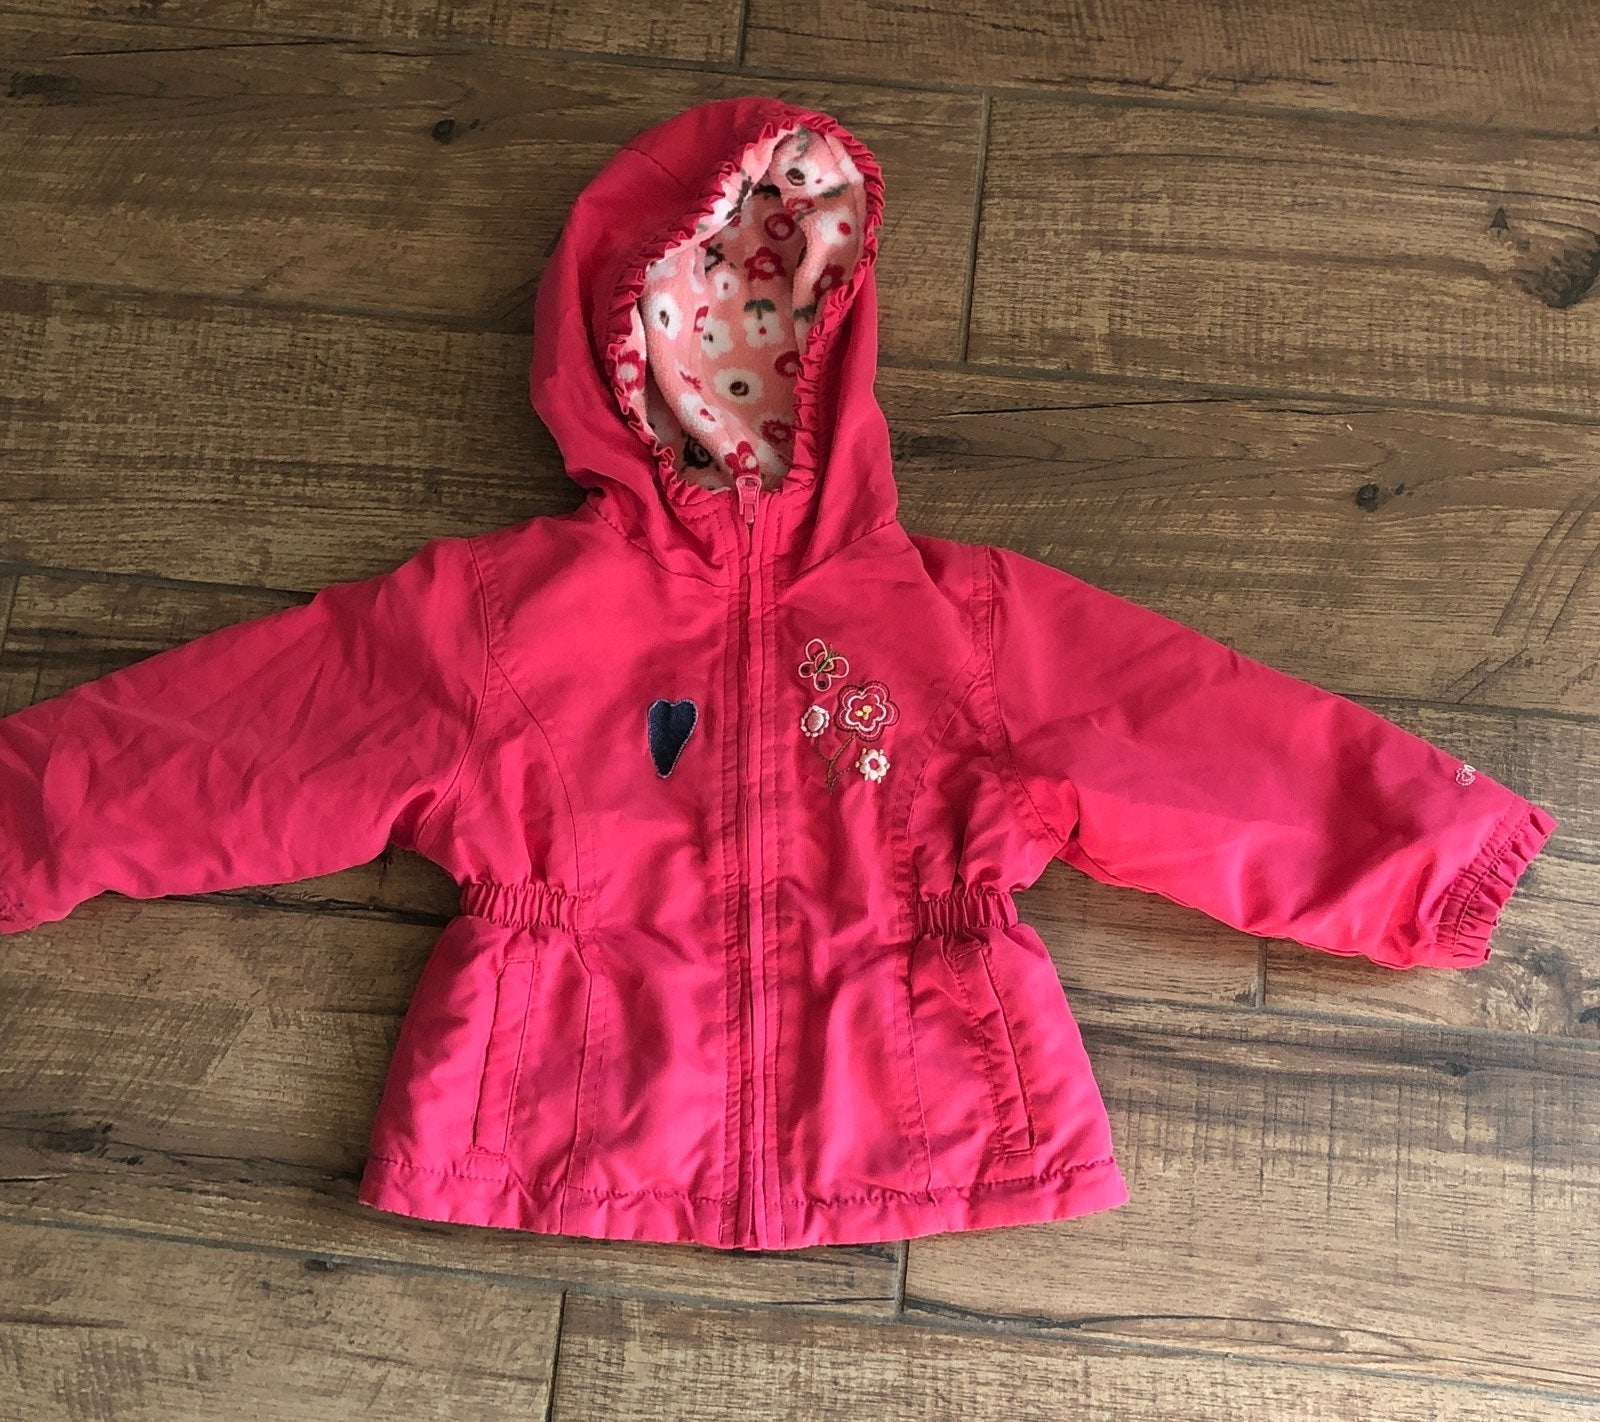 Pink Toddler Jacket 24 M